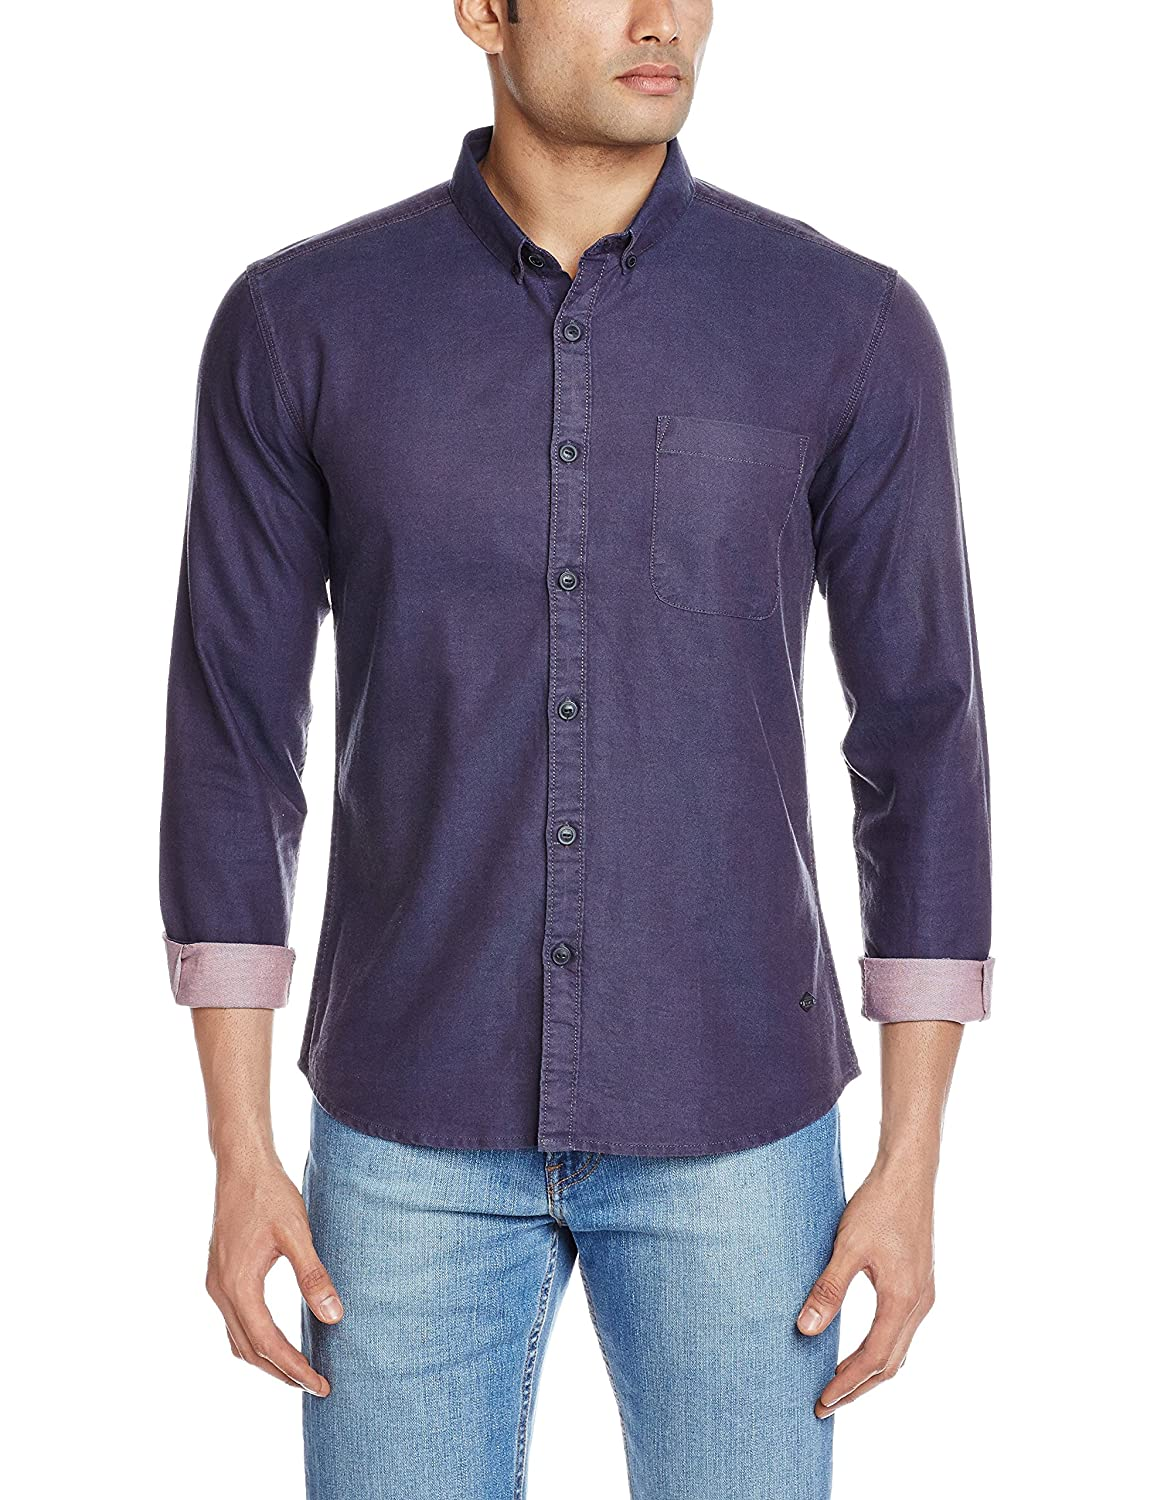 Amazon: VOI Jeans Men's Casual Shirt @ Rs.499/- (74% OFF)